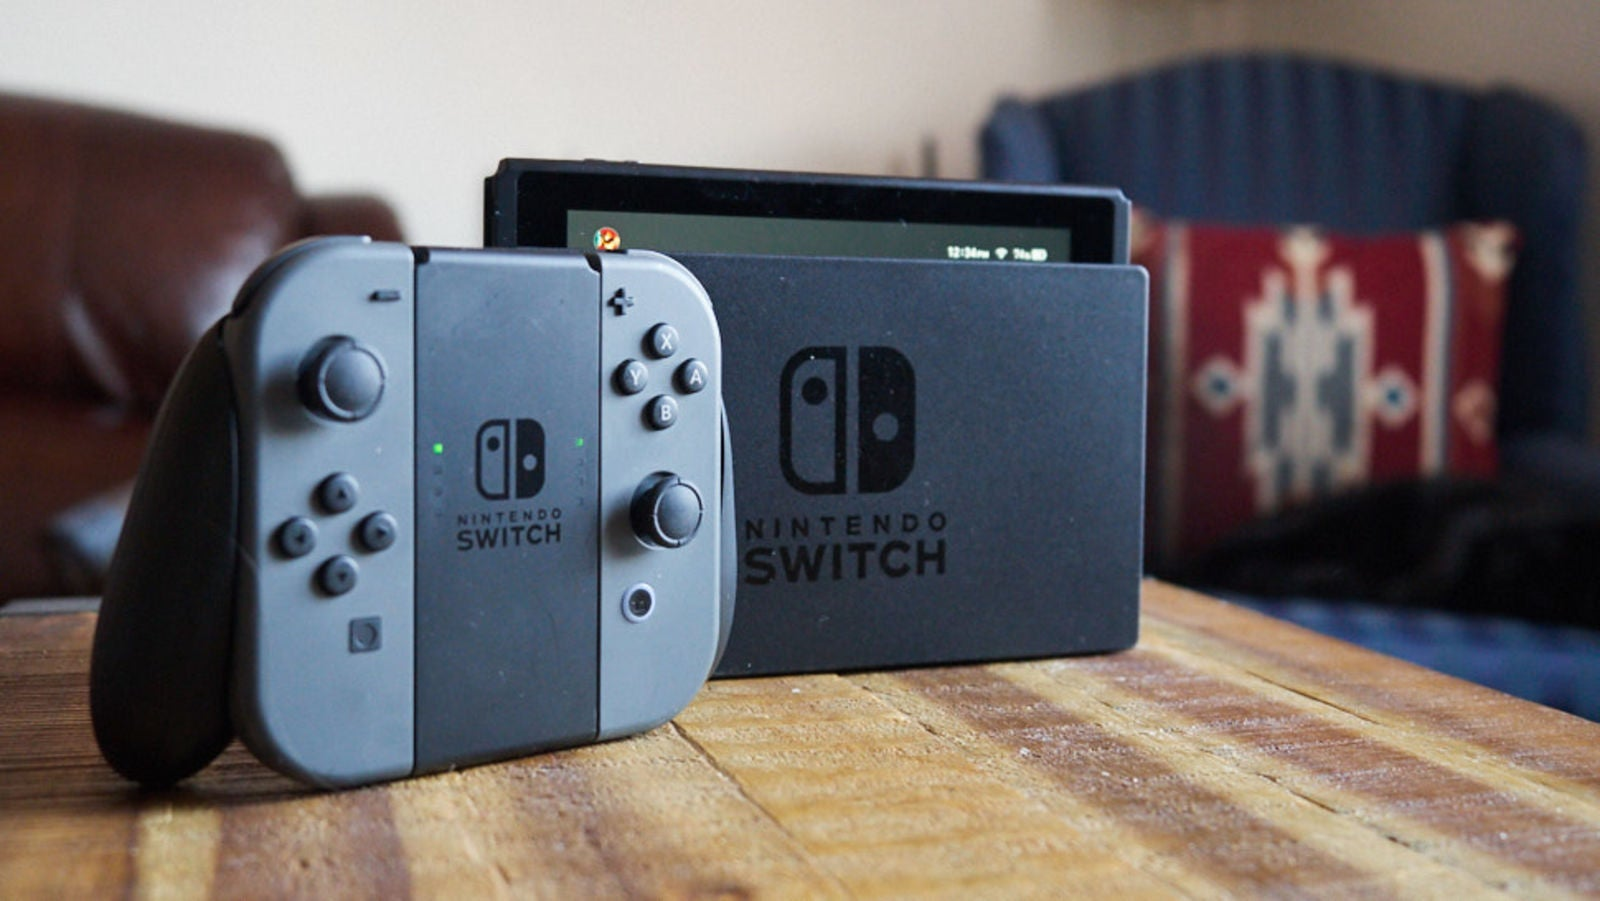 Nintendo reportedly delays 64GB Switch cartridges until 2019